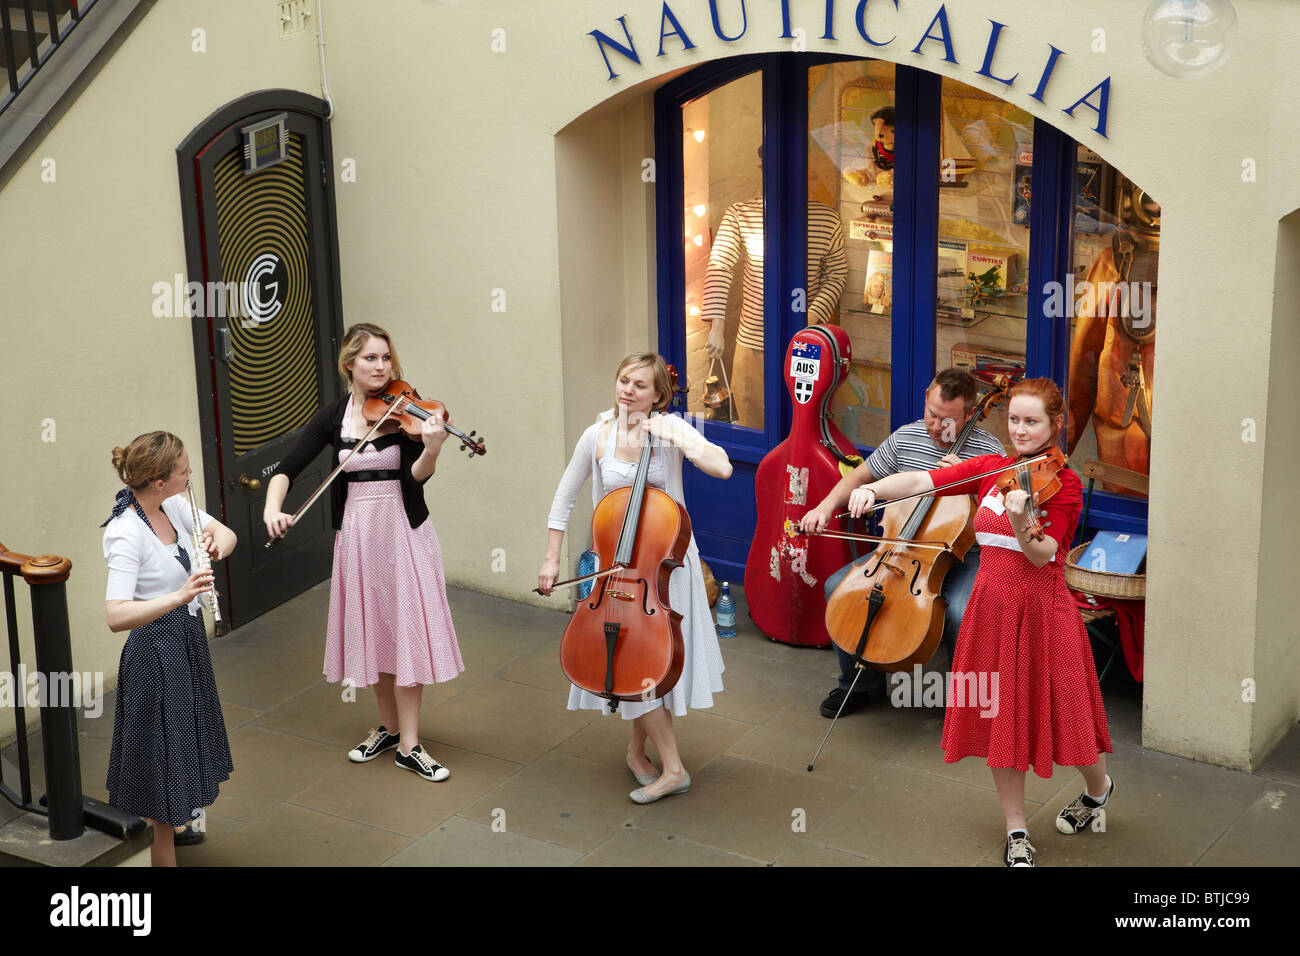 Street performers, Covent Garden Market, London, England, United Kingdom - Stock Image